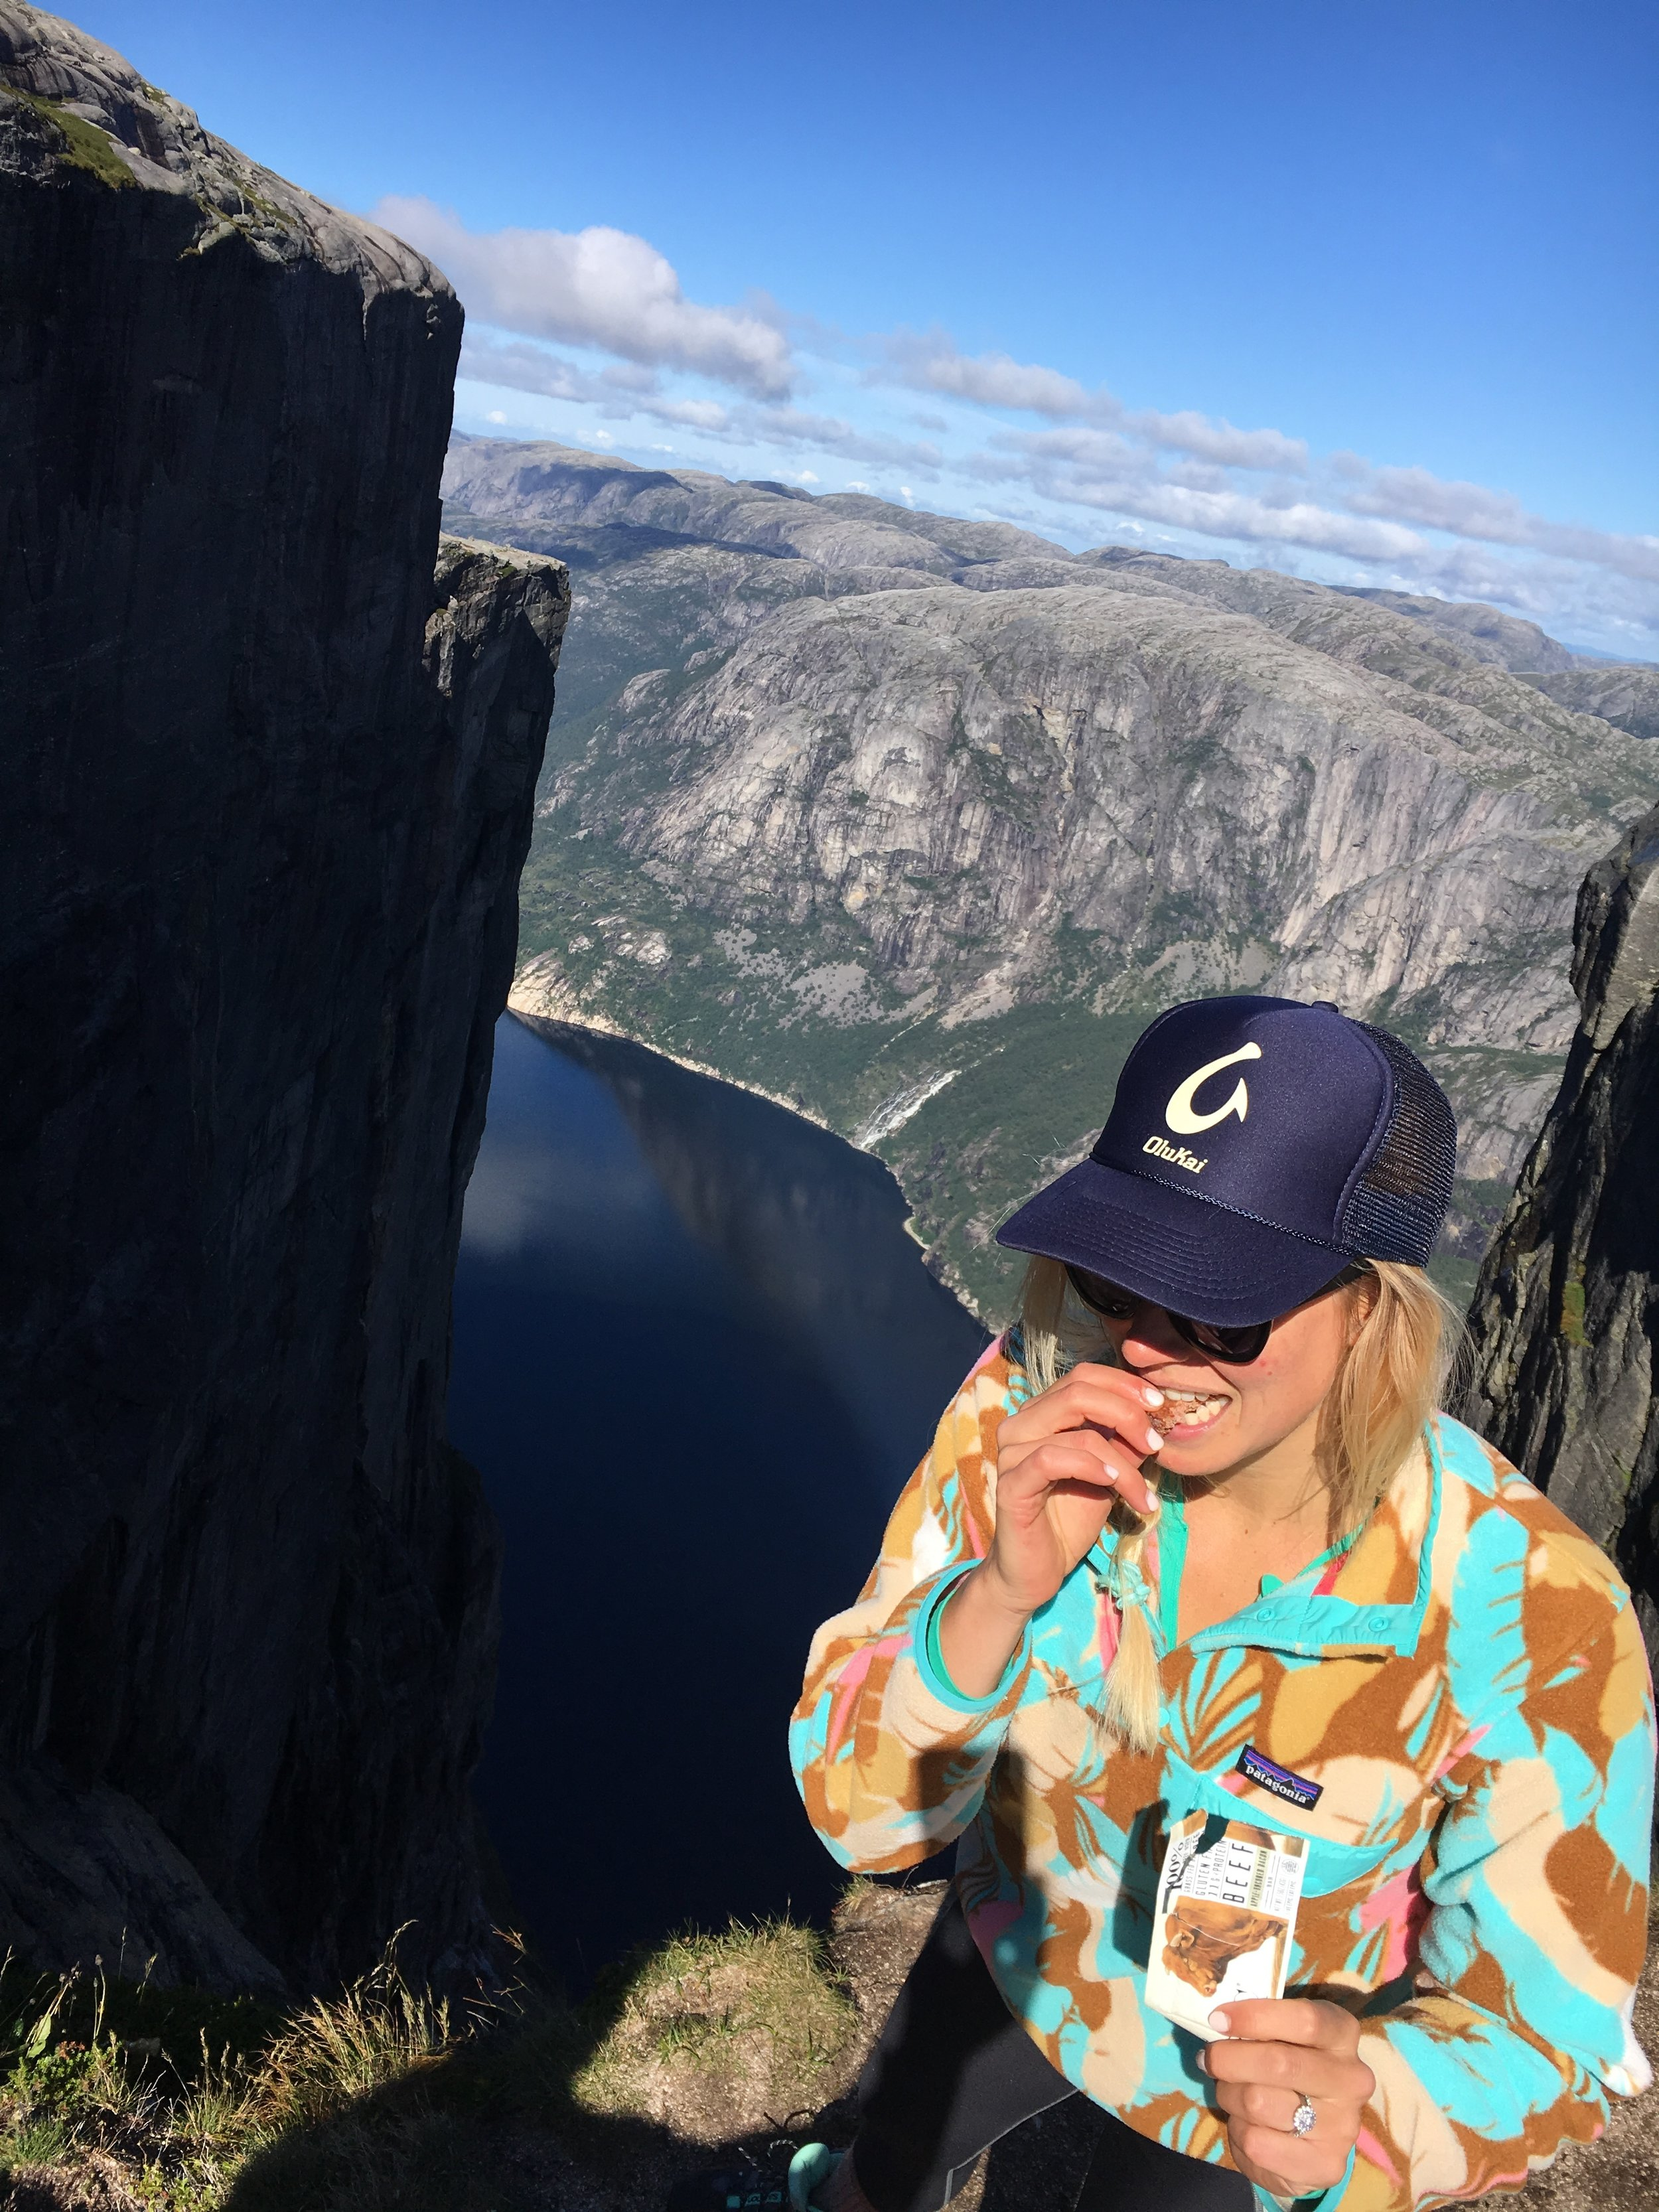 I love taking Epic Bars with me everywhere I go. Here is am snacking on one after a big climb in Norway this past August.